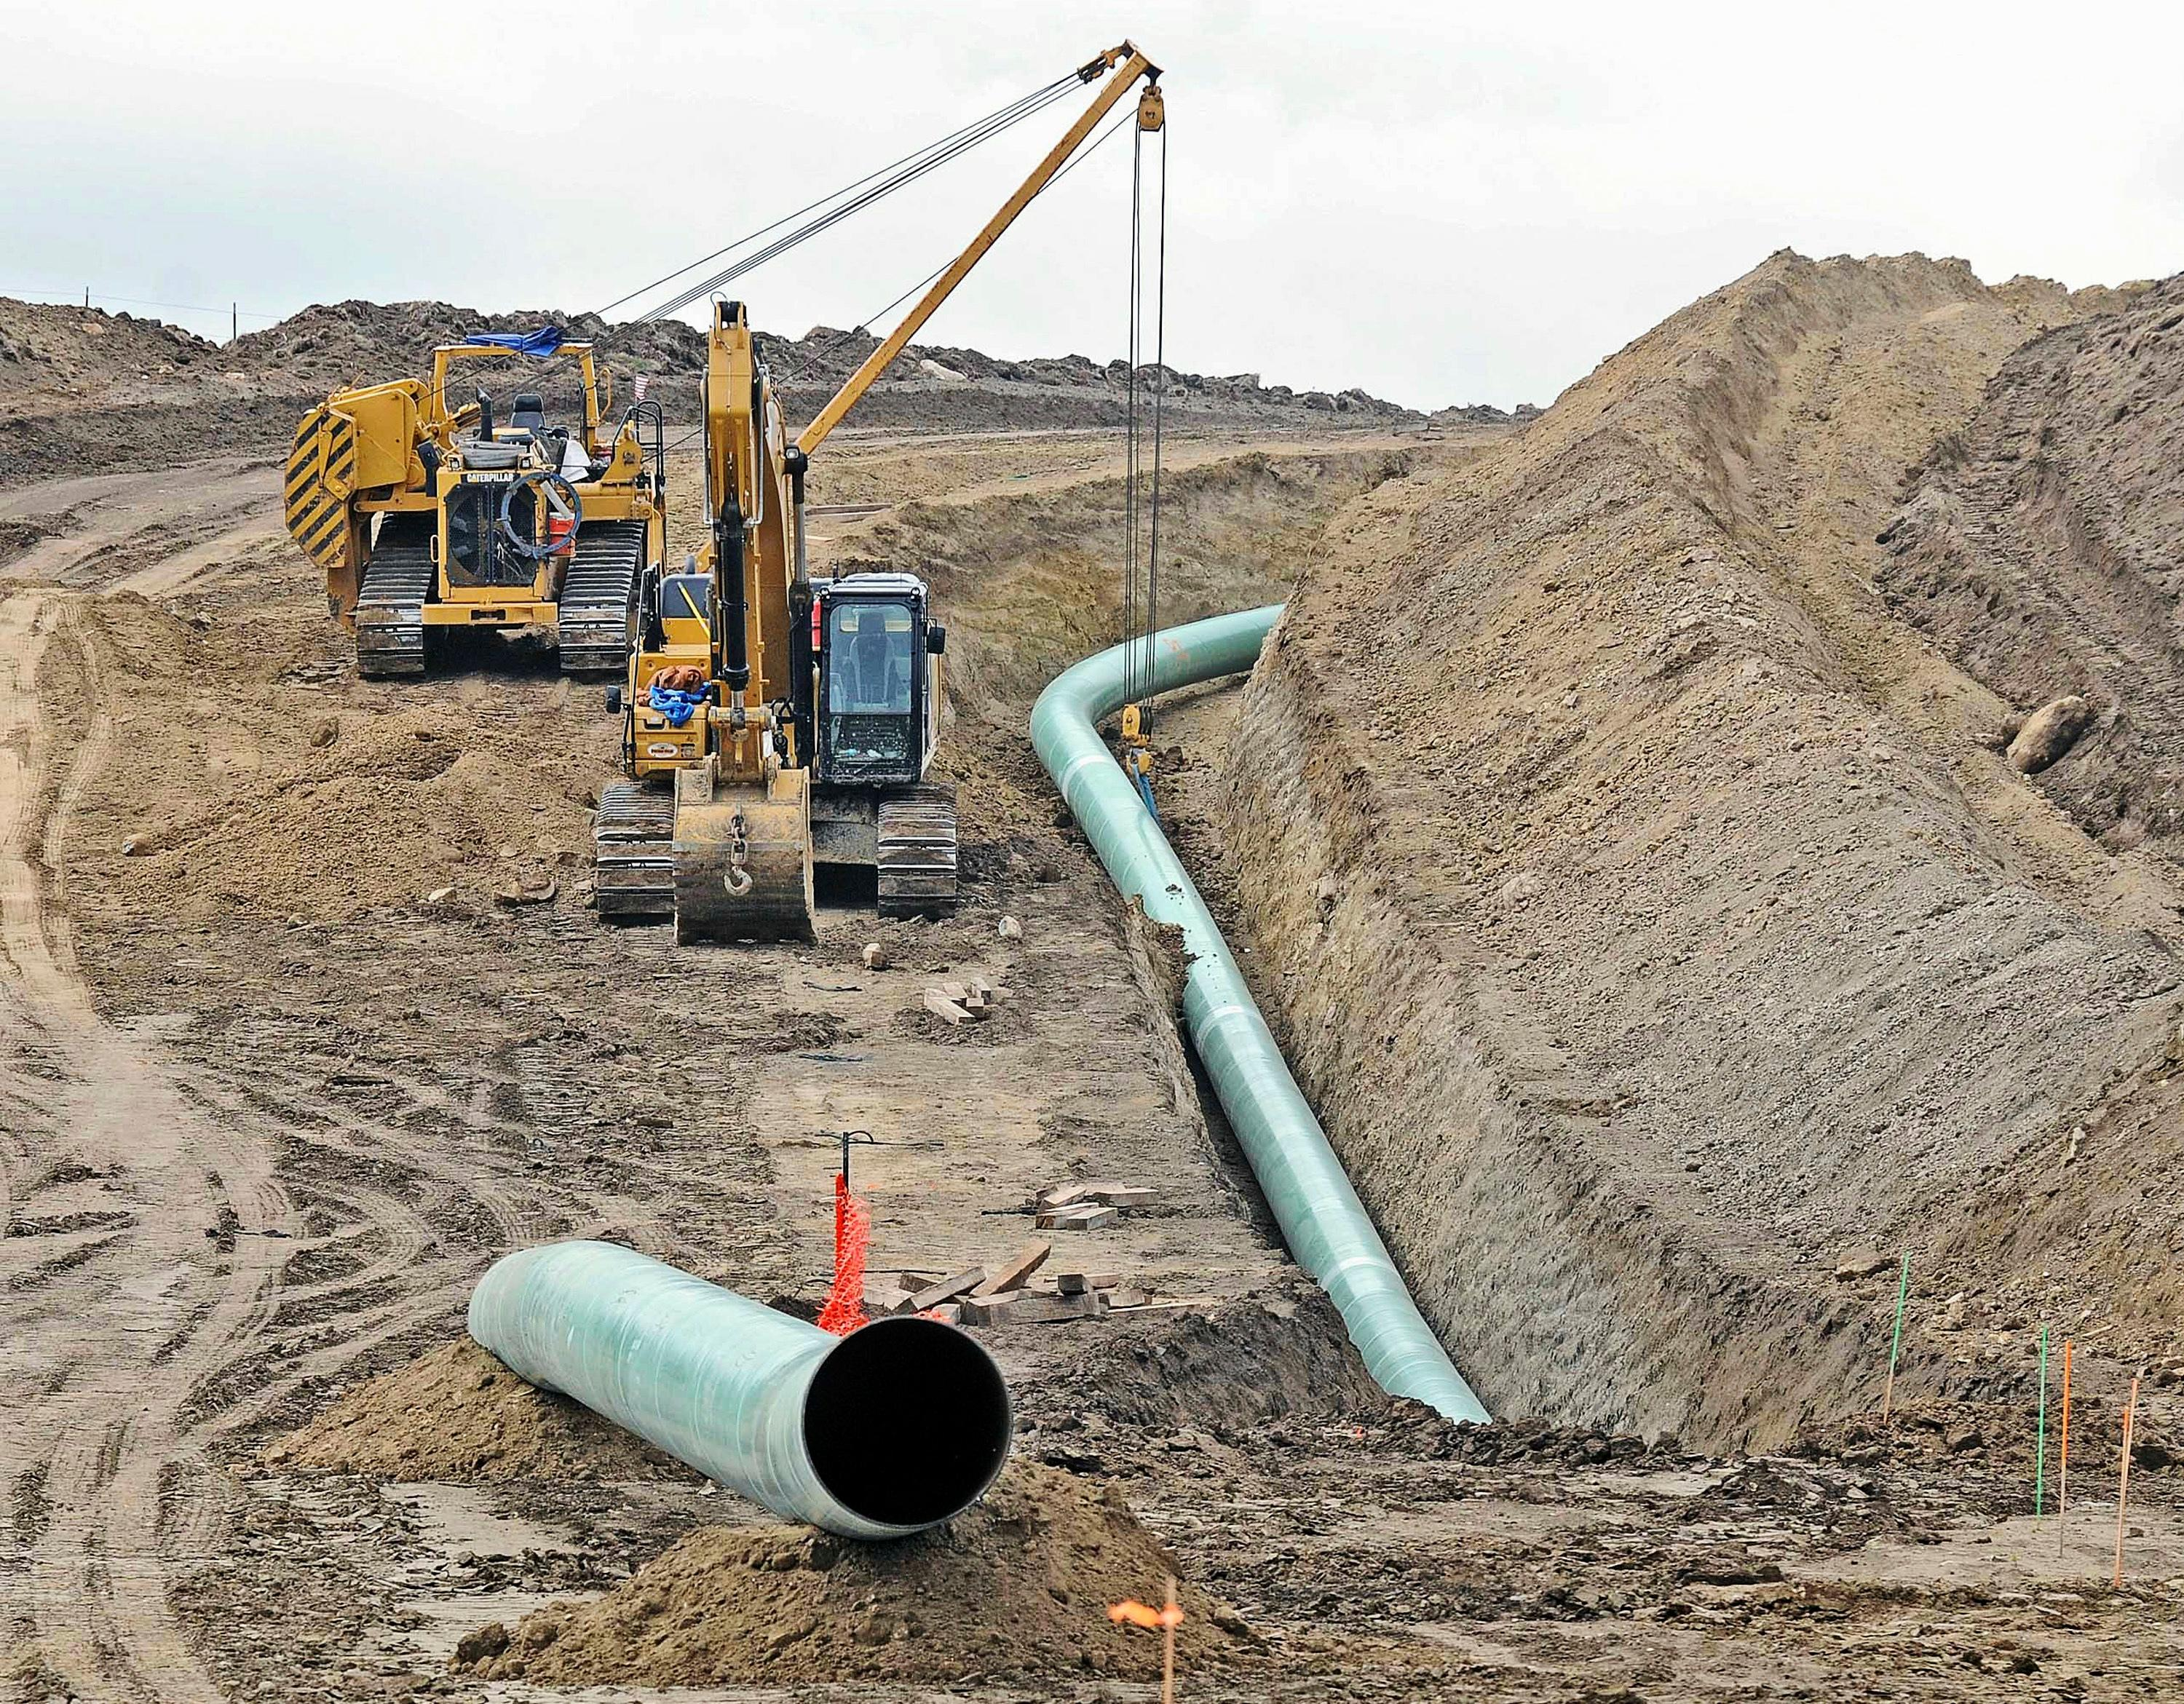 FILE - In this Oct. 5, 2016, file photo, heavy equipment is seen at a site where sections of the Dakota Access pipeline were being buried near the town of St. Anthony in Morton County, N.D. The 1,200-mile line carrying North Dakota oil through South Dakota and Iowa to a distribution point in Illinois began commercial service Thursday, June 1, 2017. (Tom Stromme/The Bismarck Tribune via AP, File)